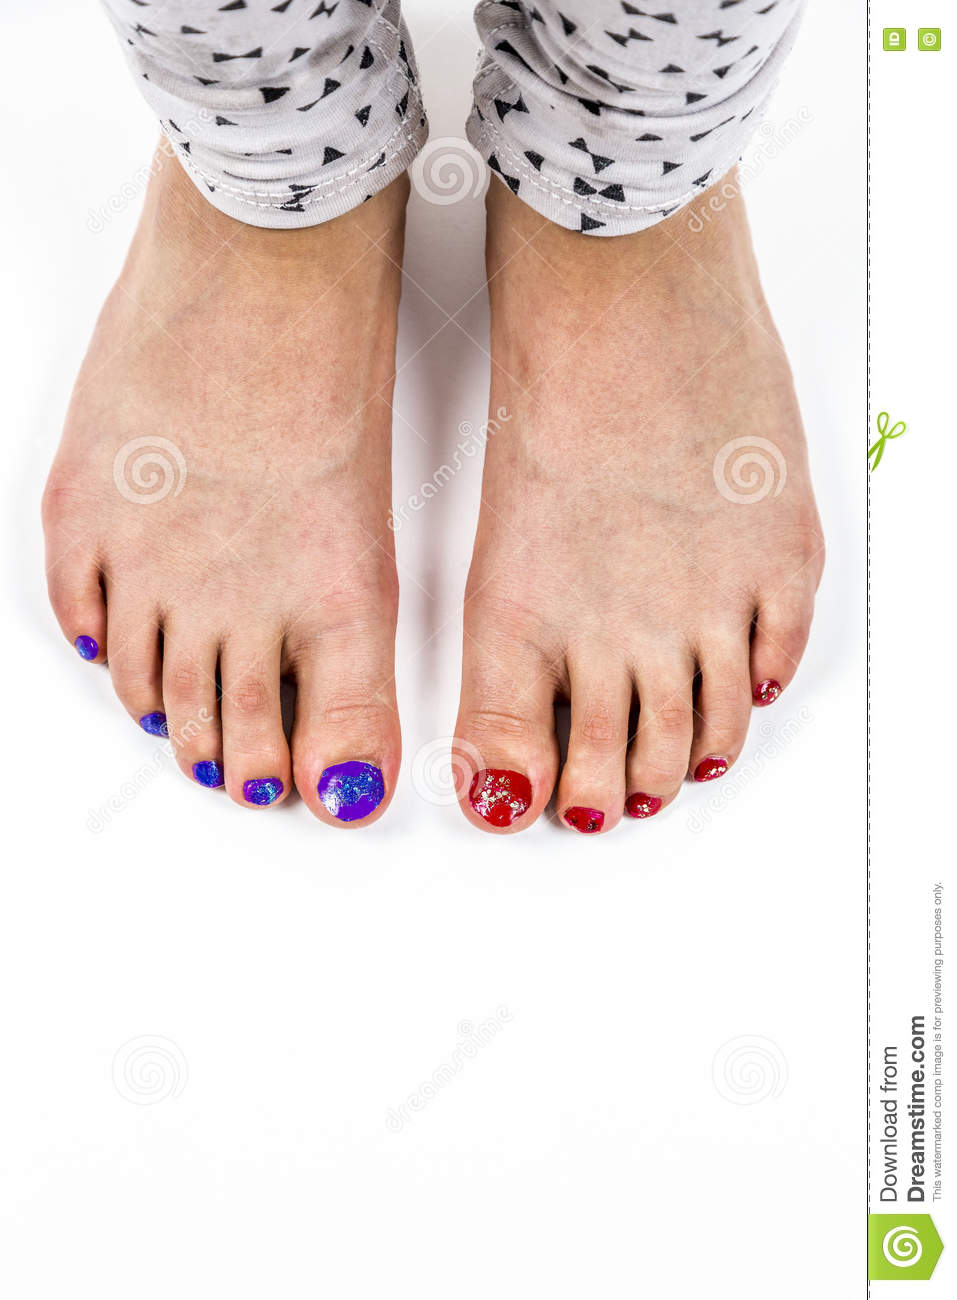 Young feet with painted toenails